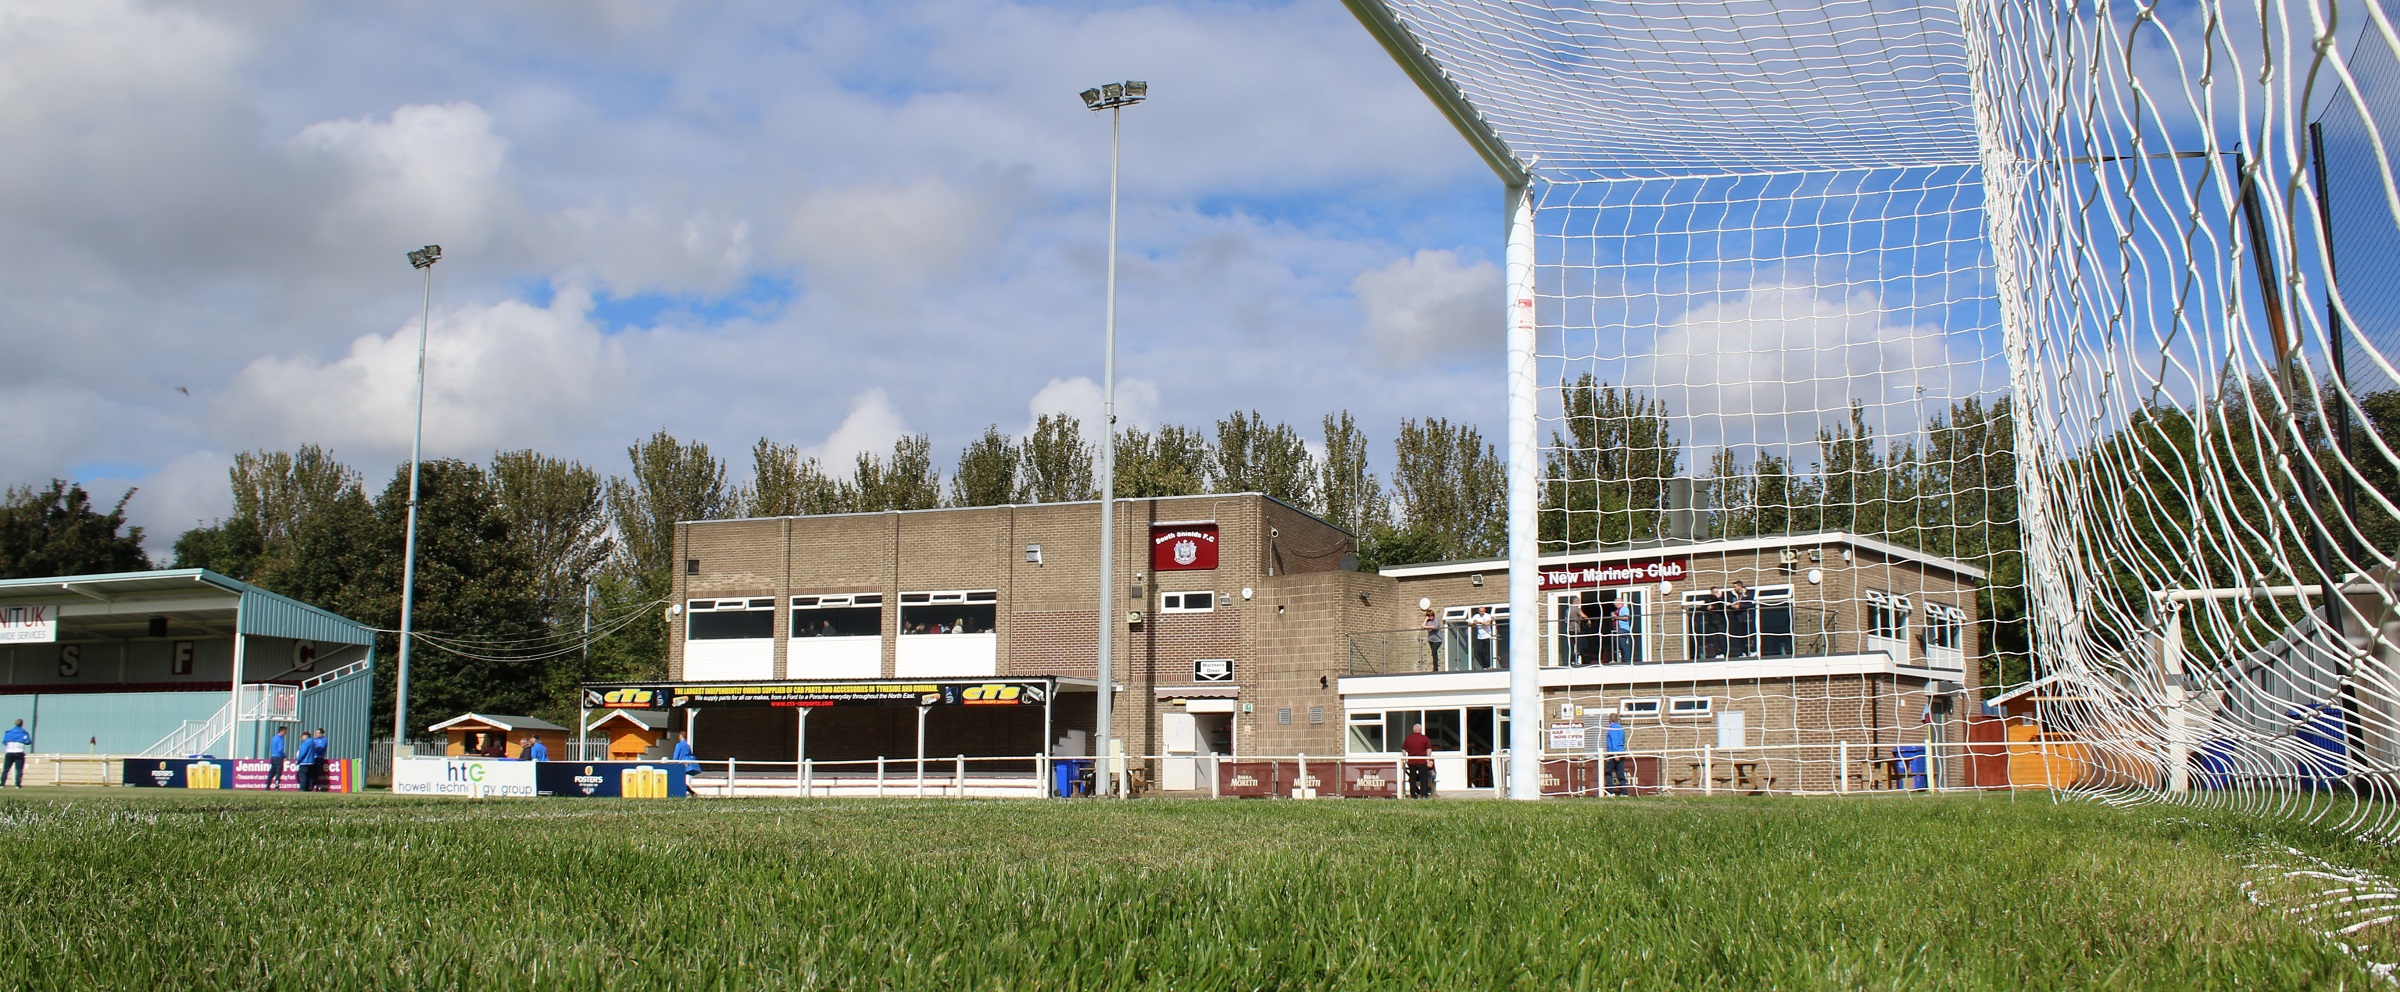 Supporters' Association to hold meeting at Mariners Park – all welcome!